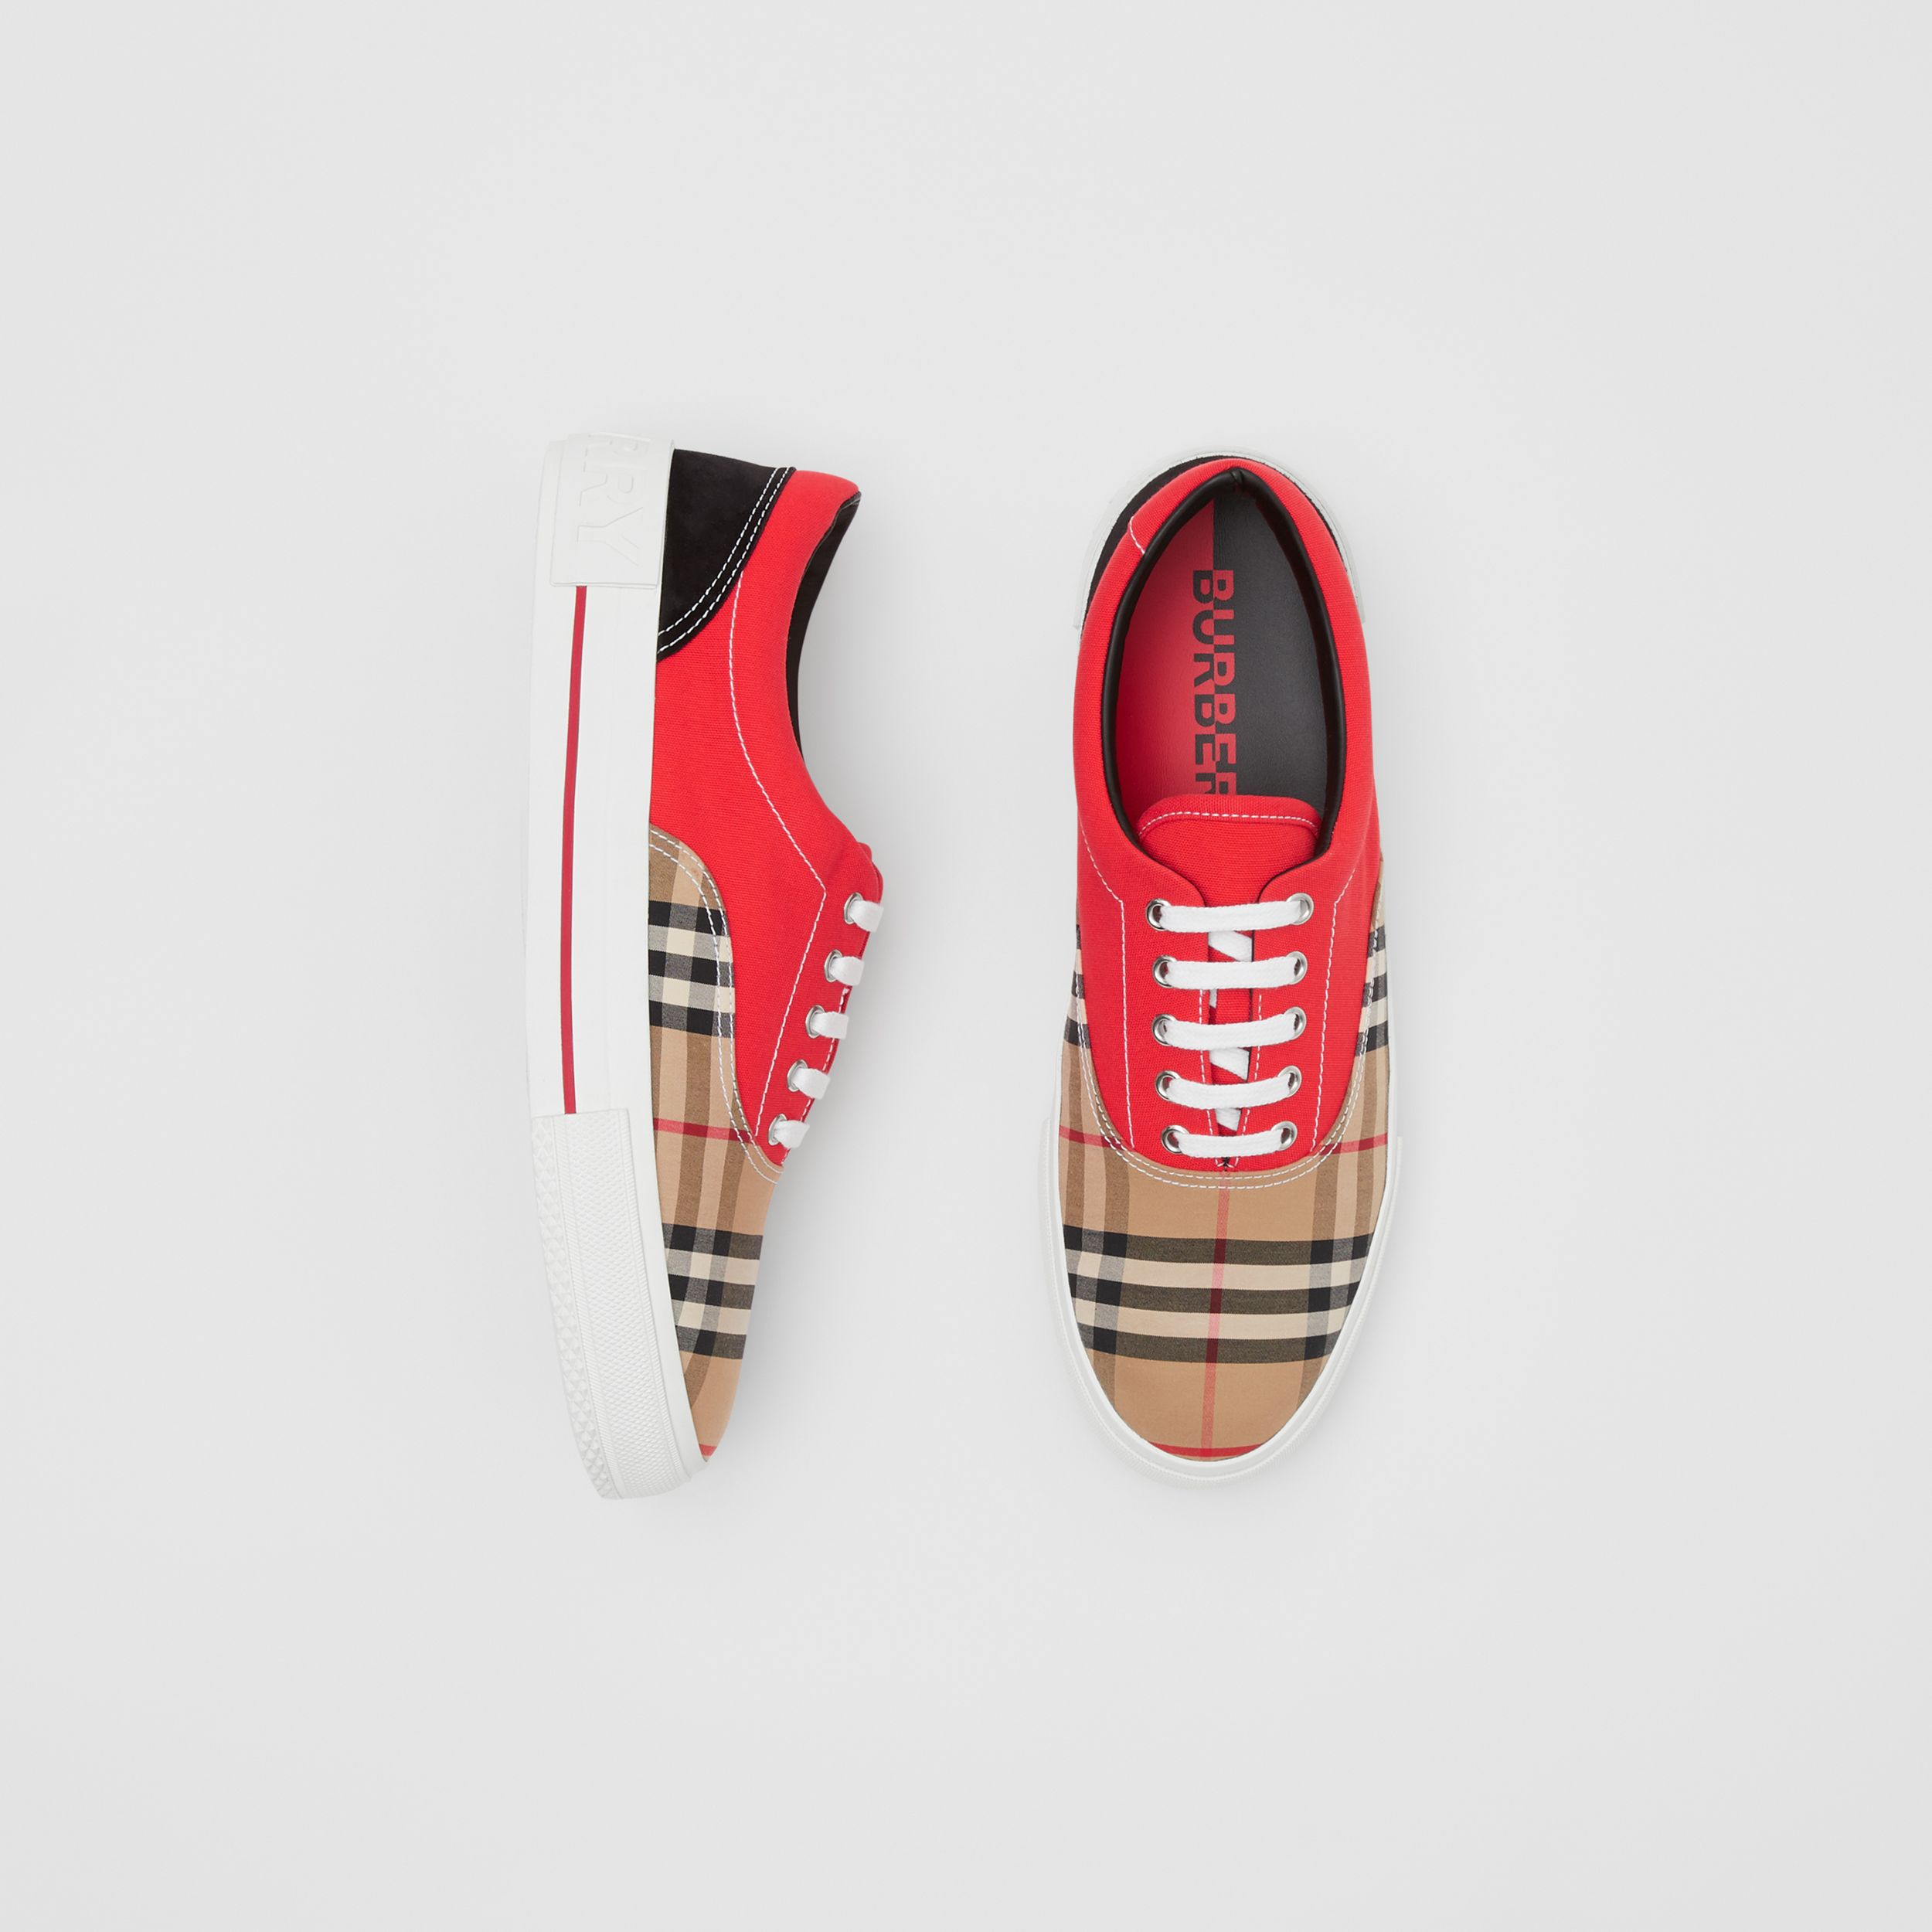 Vintage Check, Cotton Canvas and Suede Sneakers in Archive Beige/red - Men | Burberry - 1